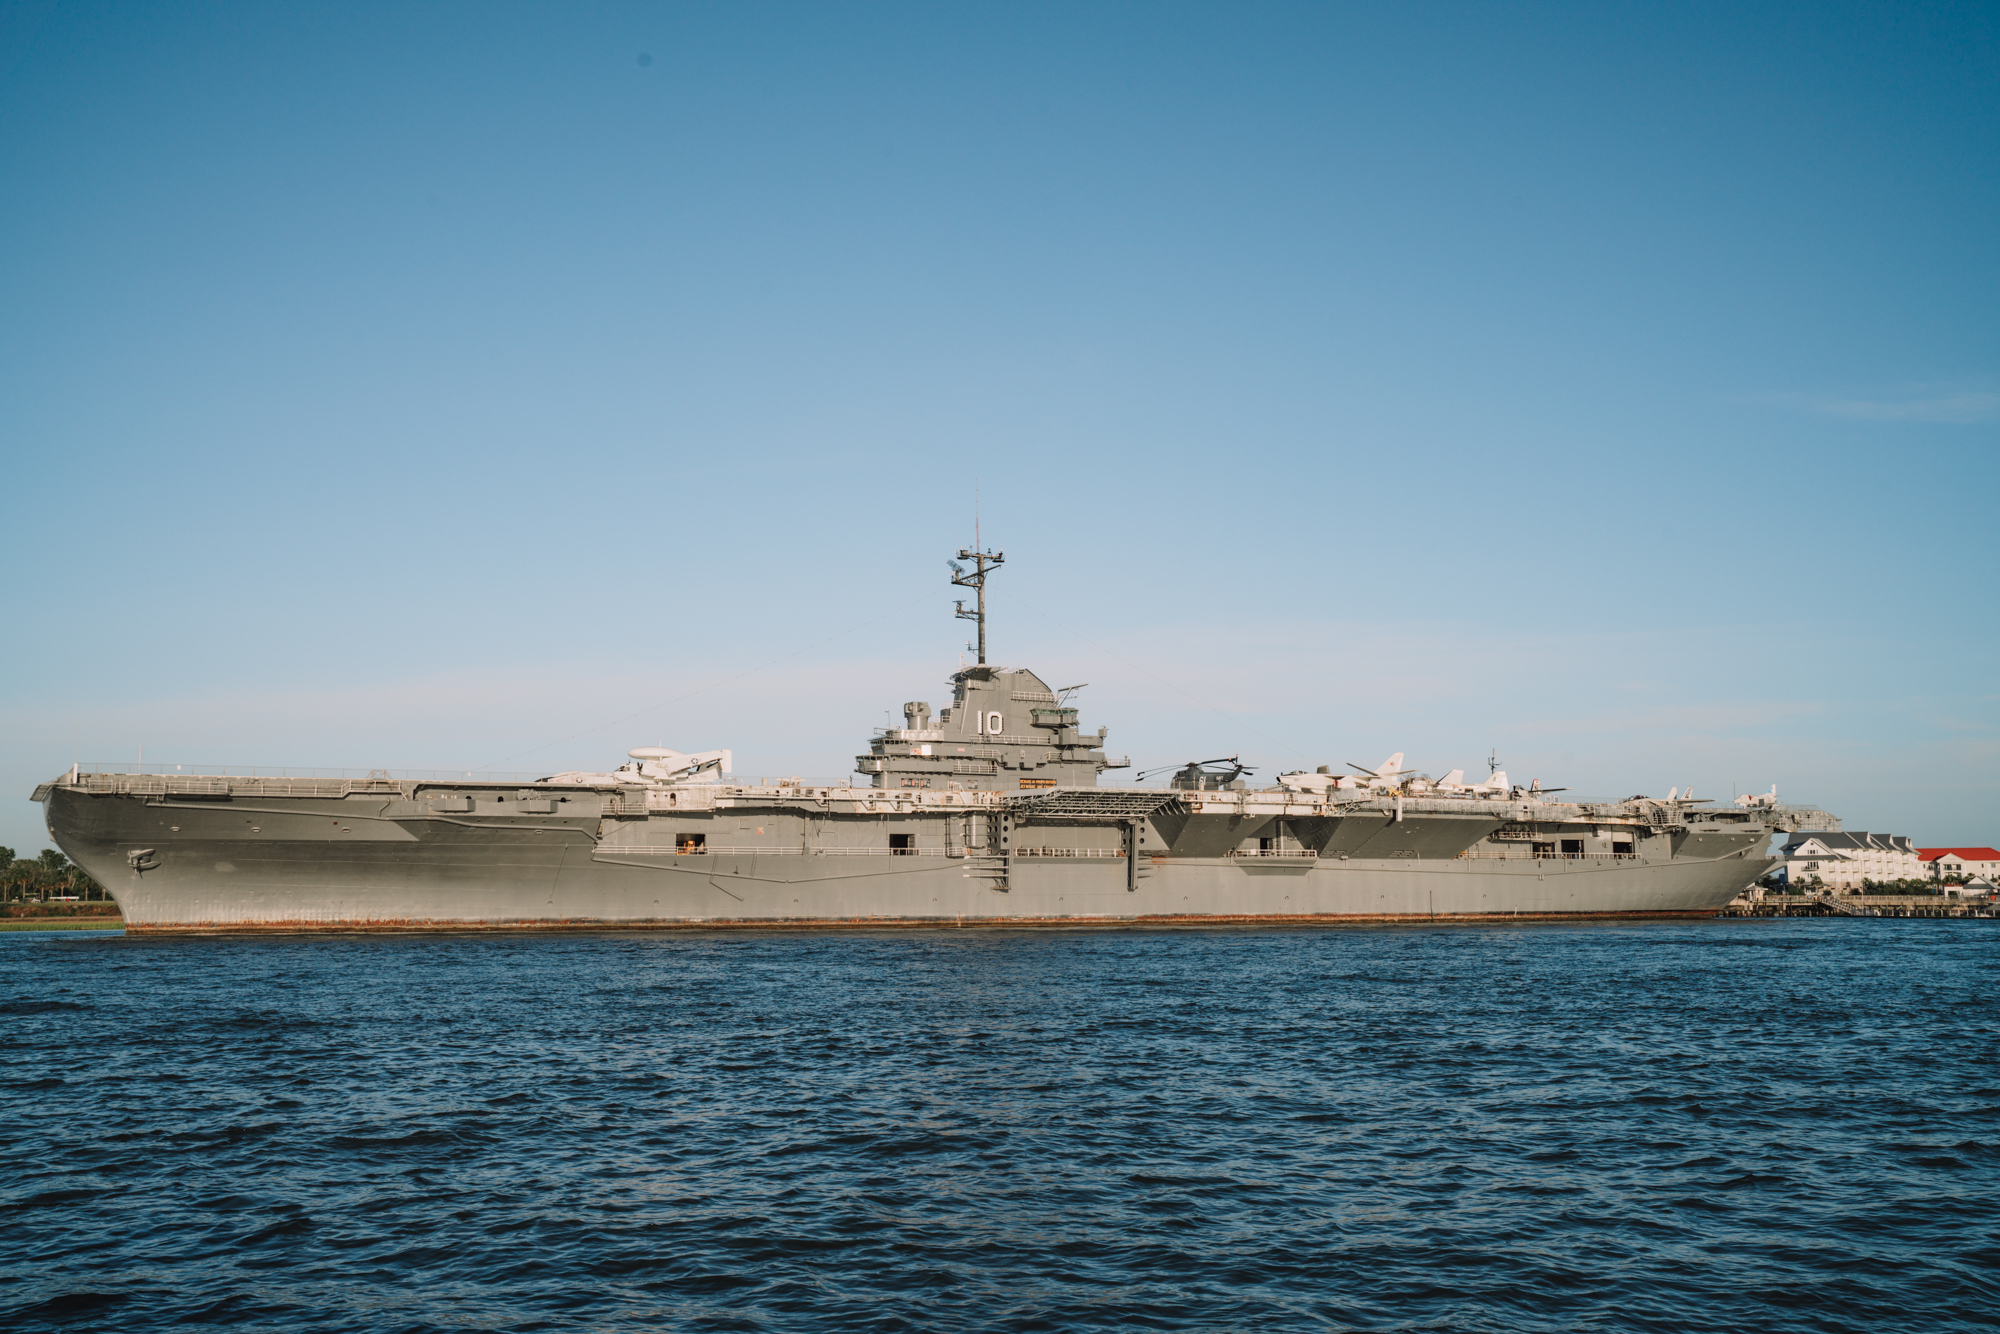 Things to do in Charleston sc with kids - a gray navy ship sits on the blue ocean water.